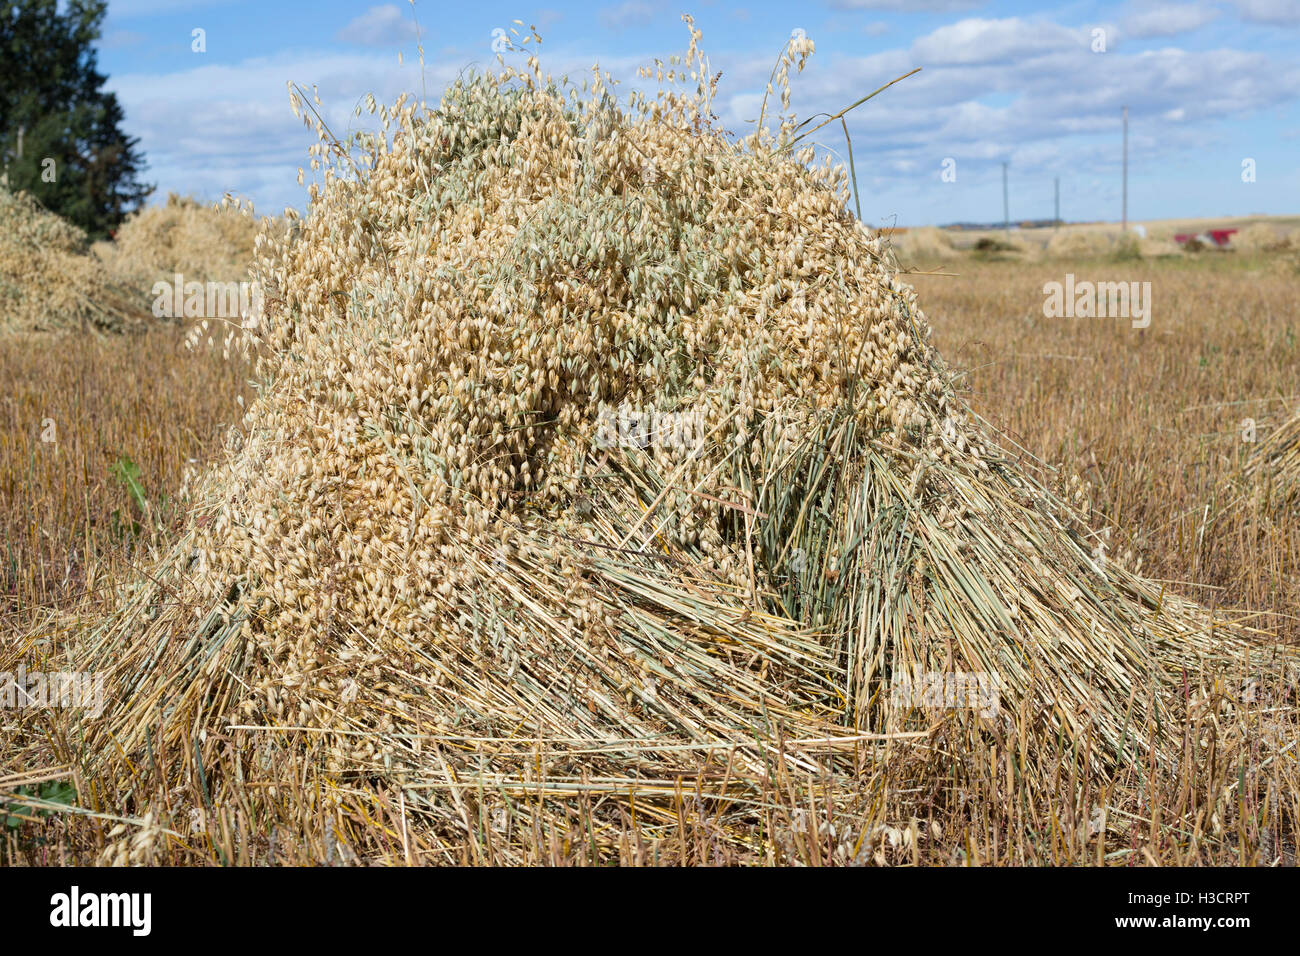 Oat stook in farm field during harvest - Stock Image